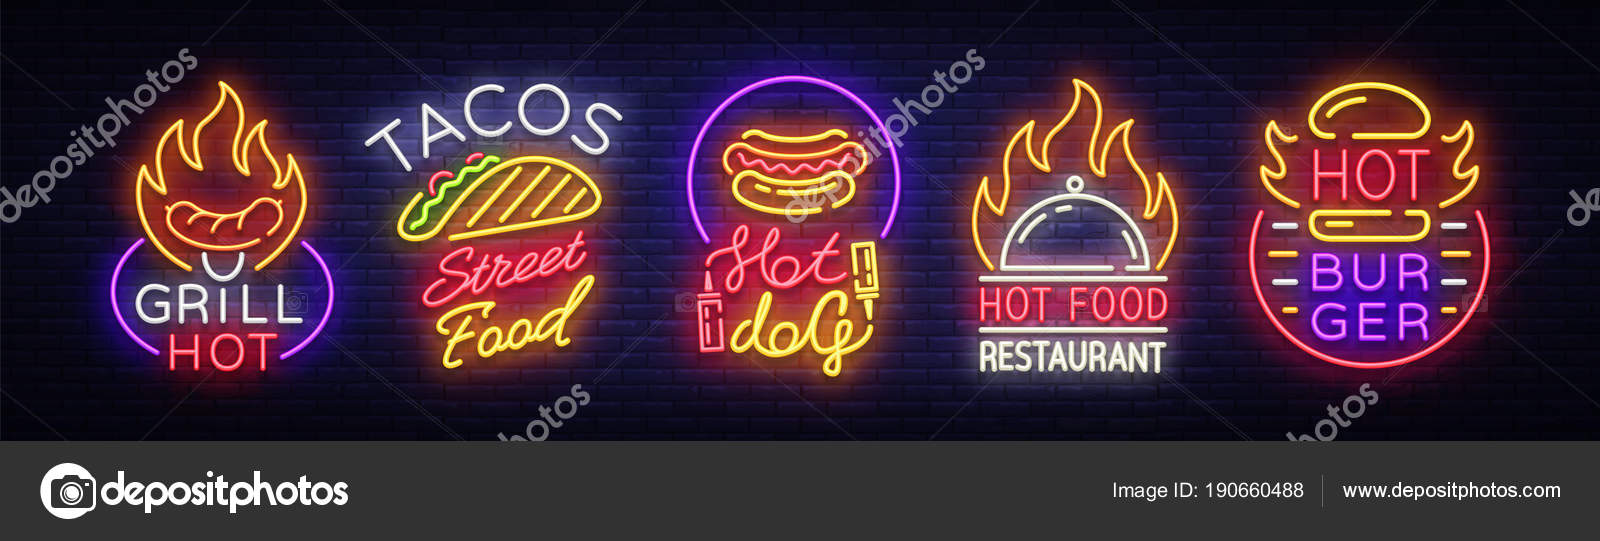 Set Fast Food Logos  Collection neon signs, Street Food Hot Grill